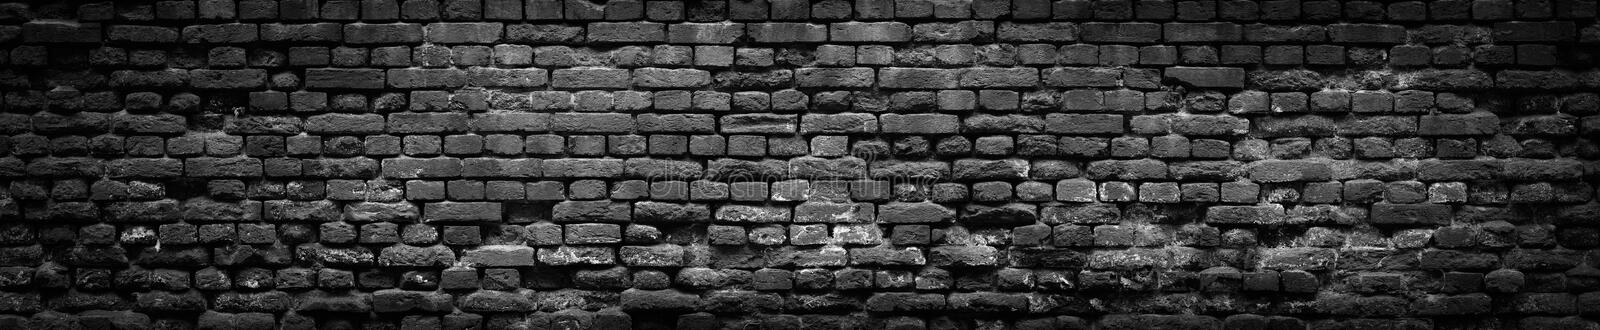 Black Old Brick wall panoramic background in high resolution royalty free stock image